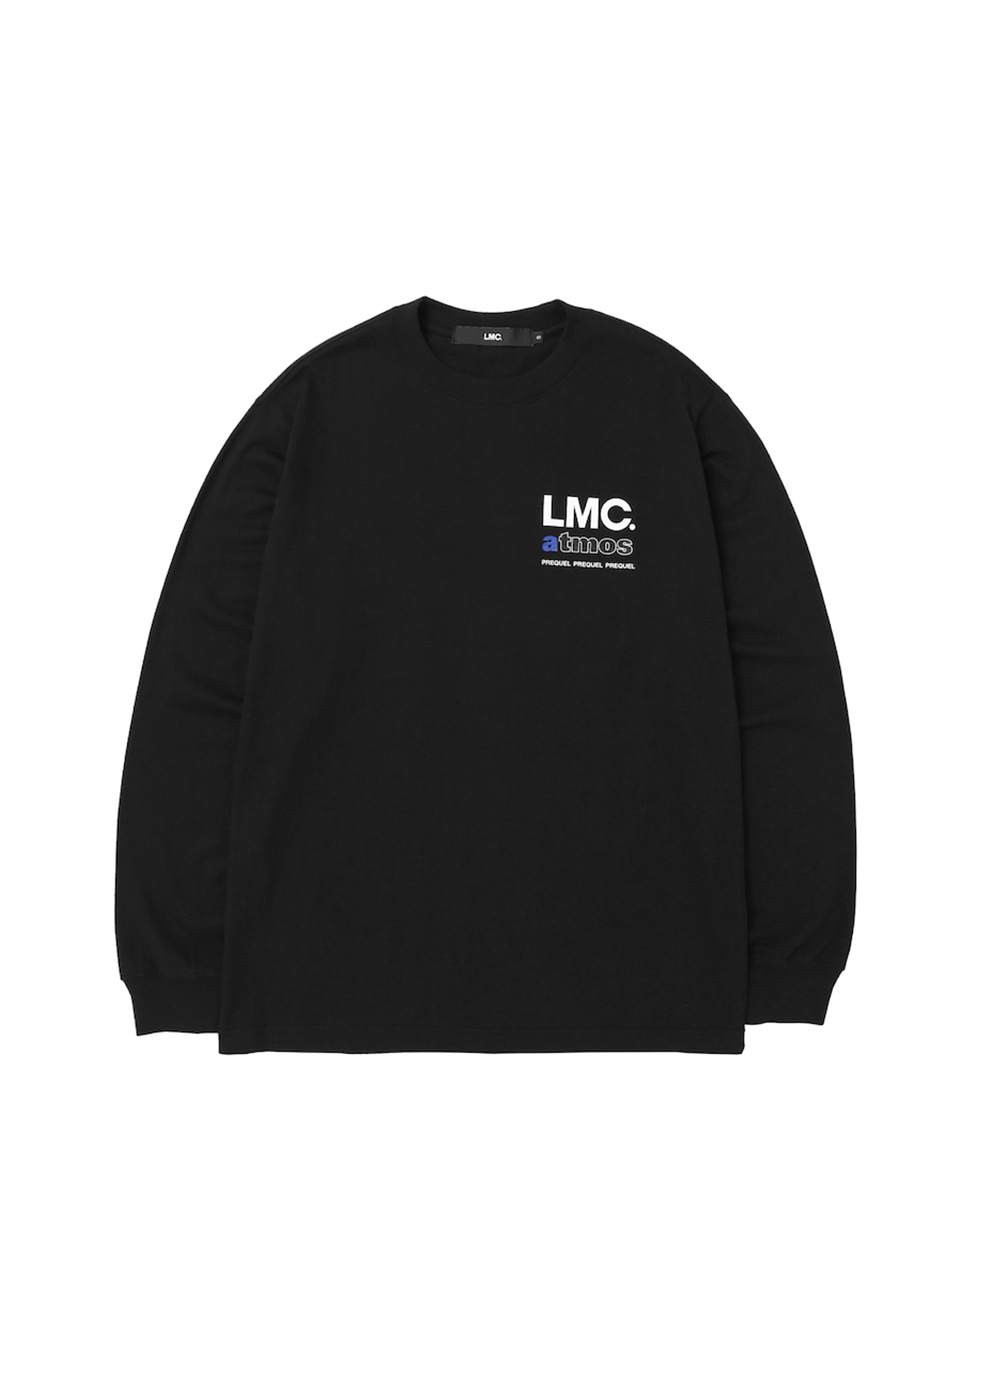 LMC x ATMOS PREQUEL LONG SLV TEE black